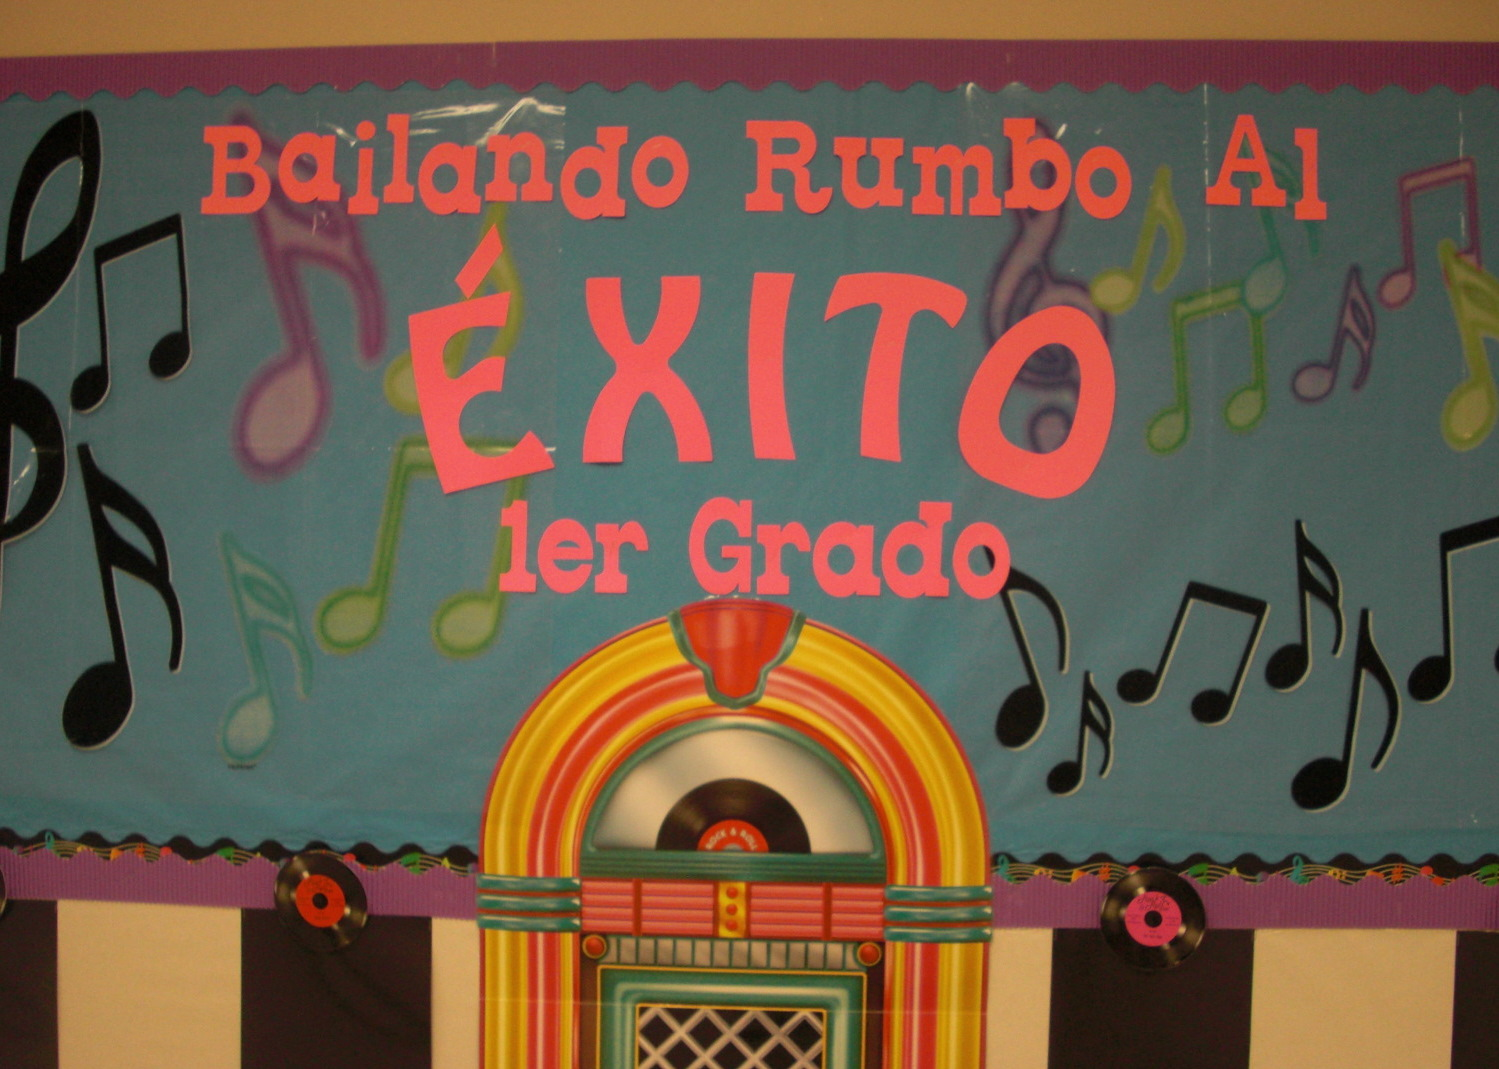 September Bulletin Board Ideas http://iteachduallanguage.blogspot.com/2012/03/bulletin-boards-you-are-so-punny.html